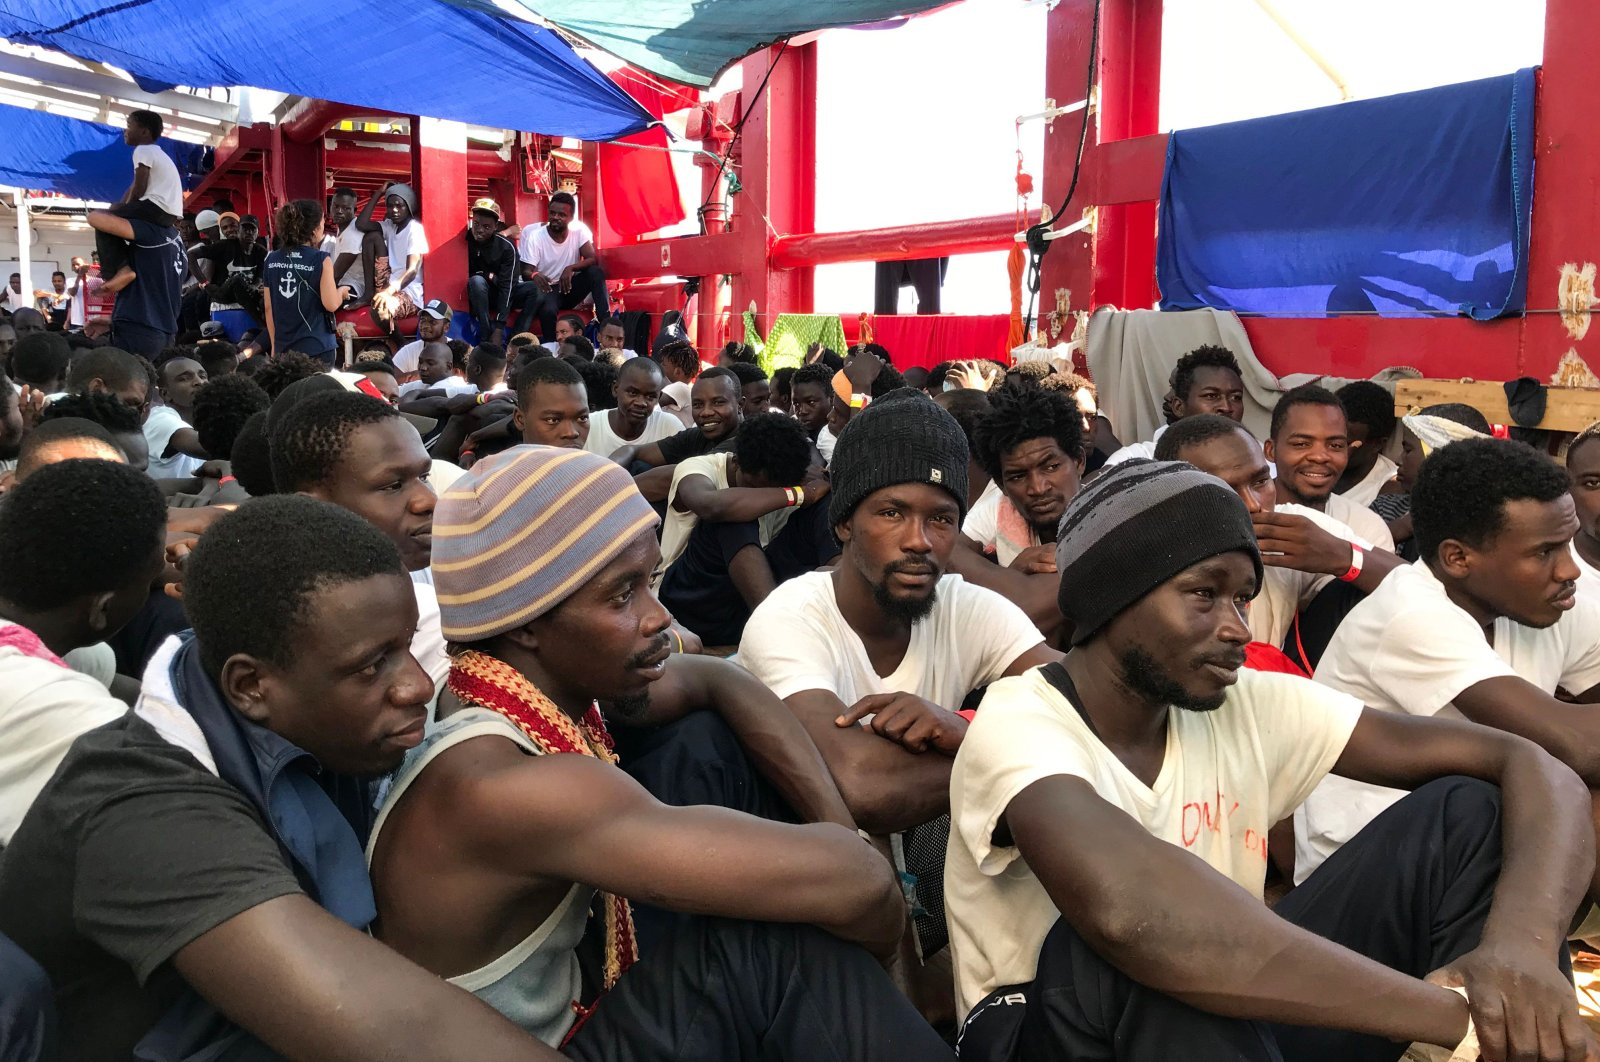 Rescued migrants gather aboard the 'Ocean Viking' rescue ship, jointly operated by French NGOs SOS Mediterranee and Medecins sans Frontieres (MSF Doctors without Borders) on August 23, 2019, (AFP Photo)